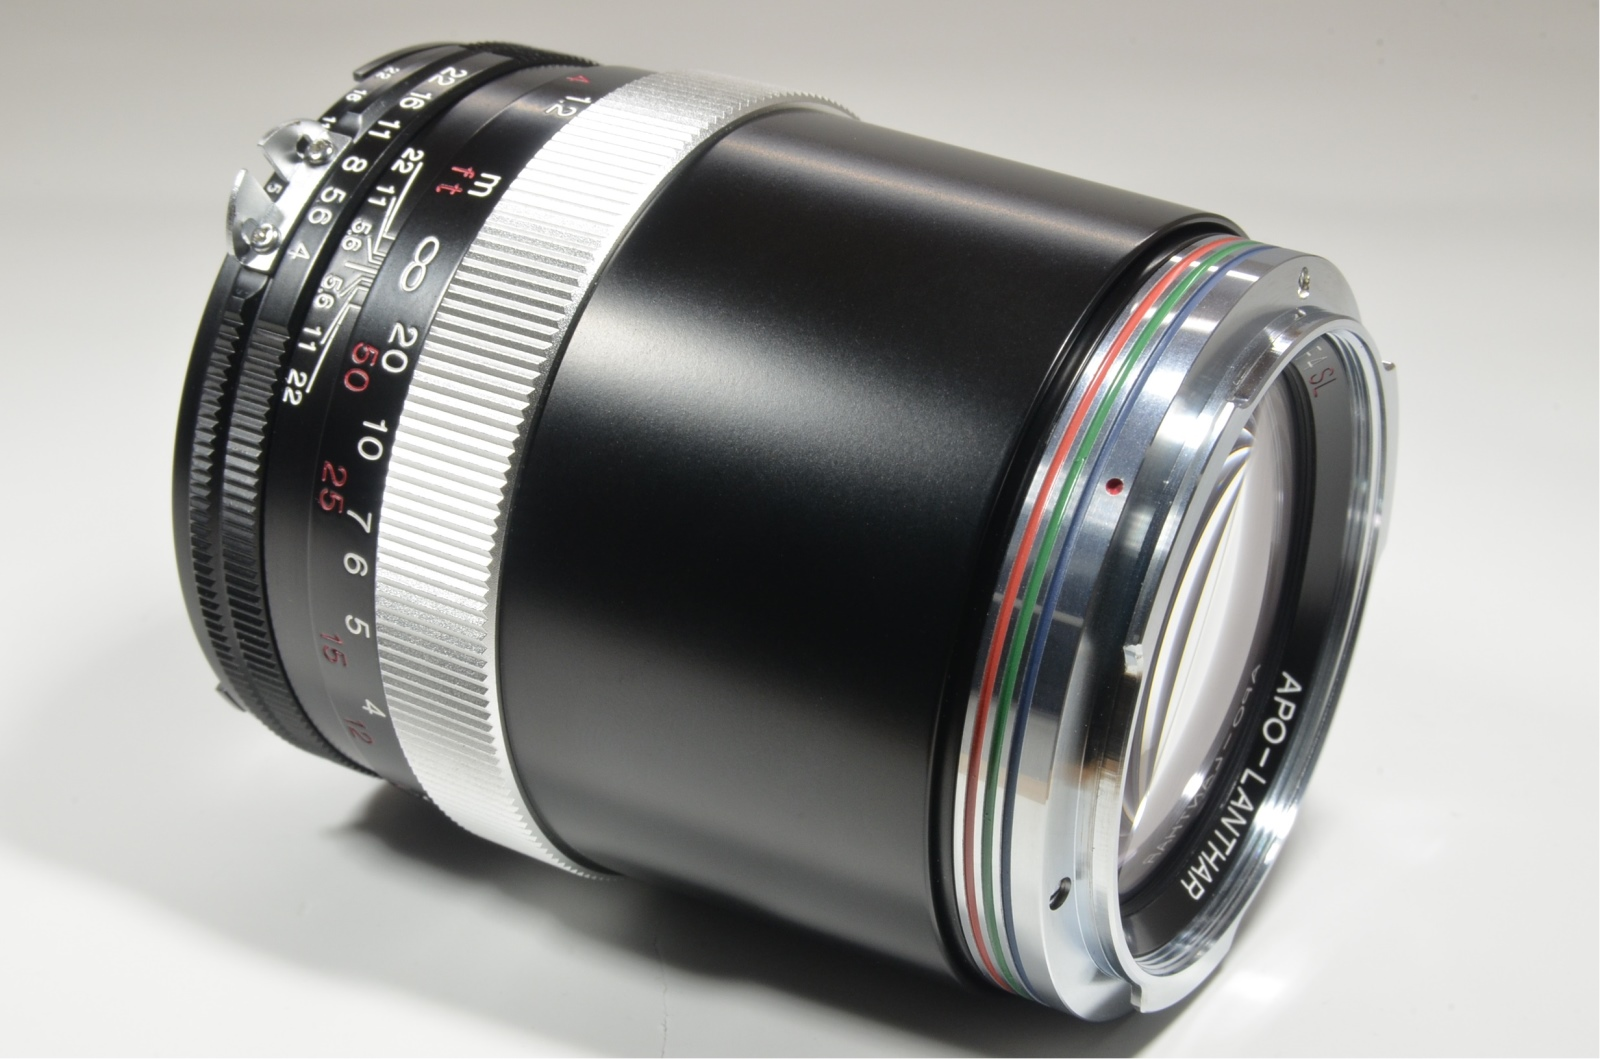 voigtlander apo-lanthar 180mm f/4 sl for ai-s nikon with hood